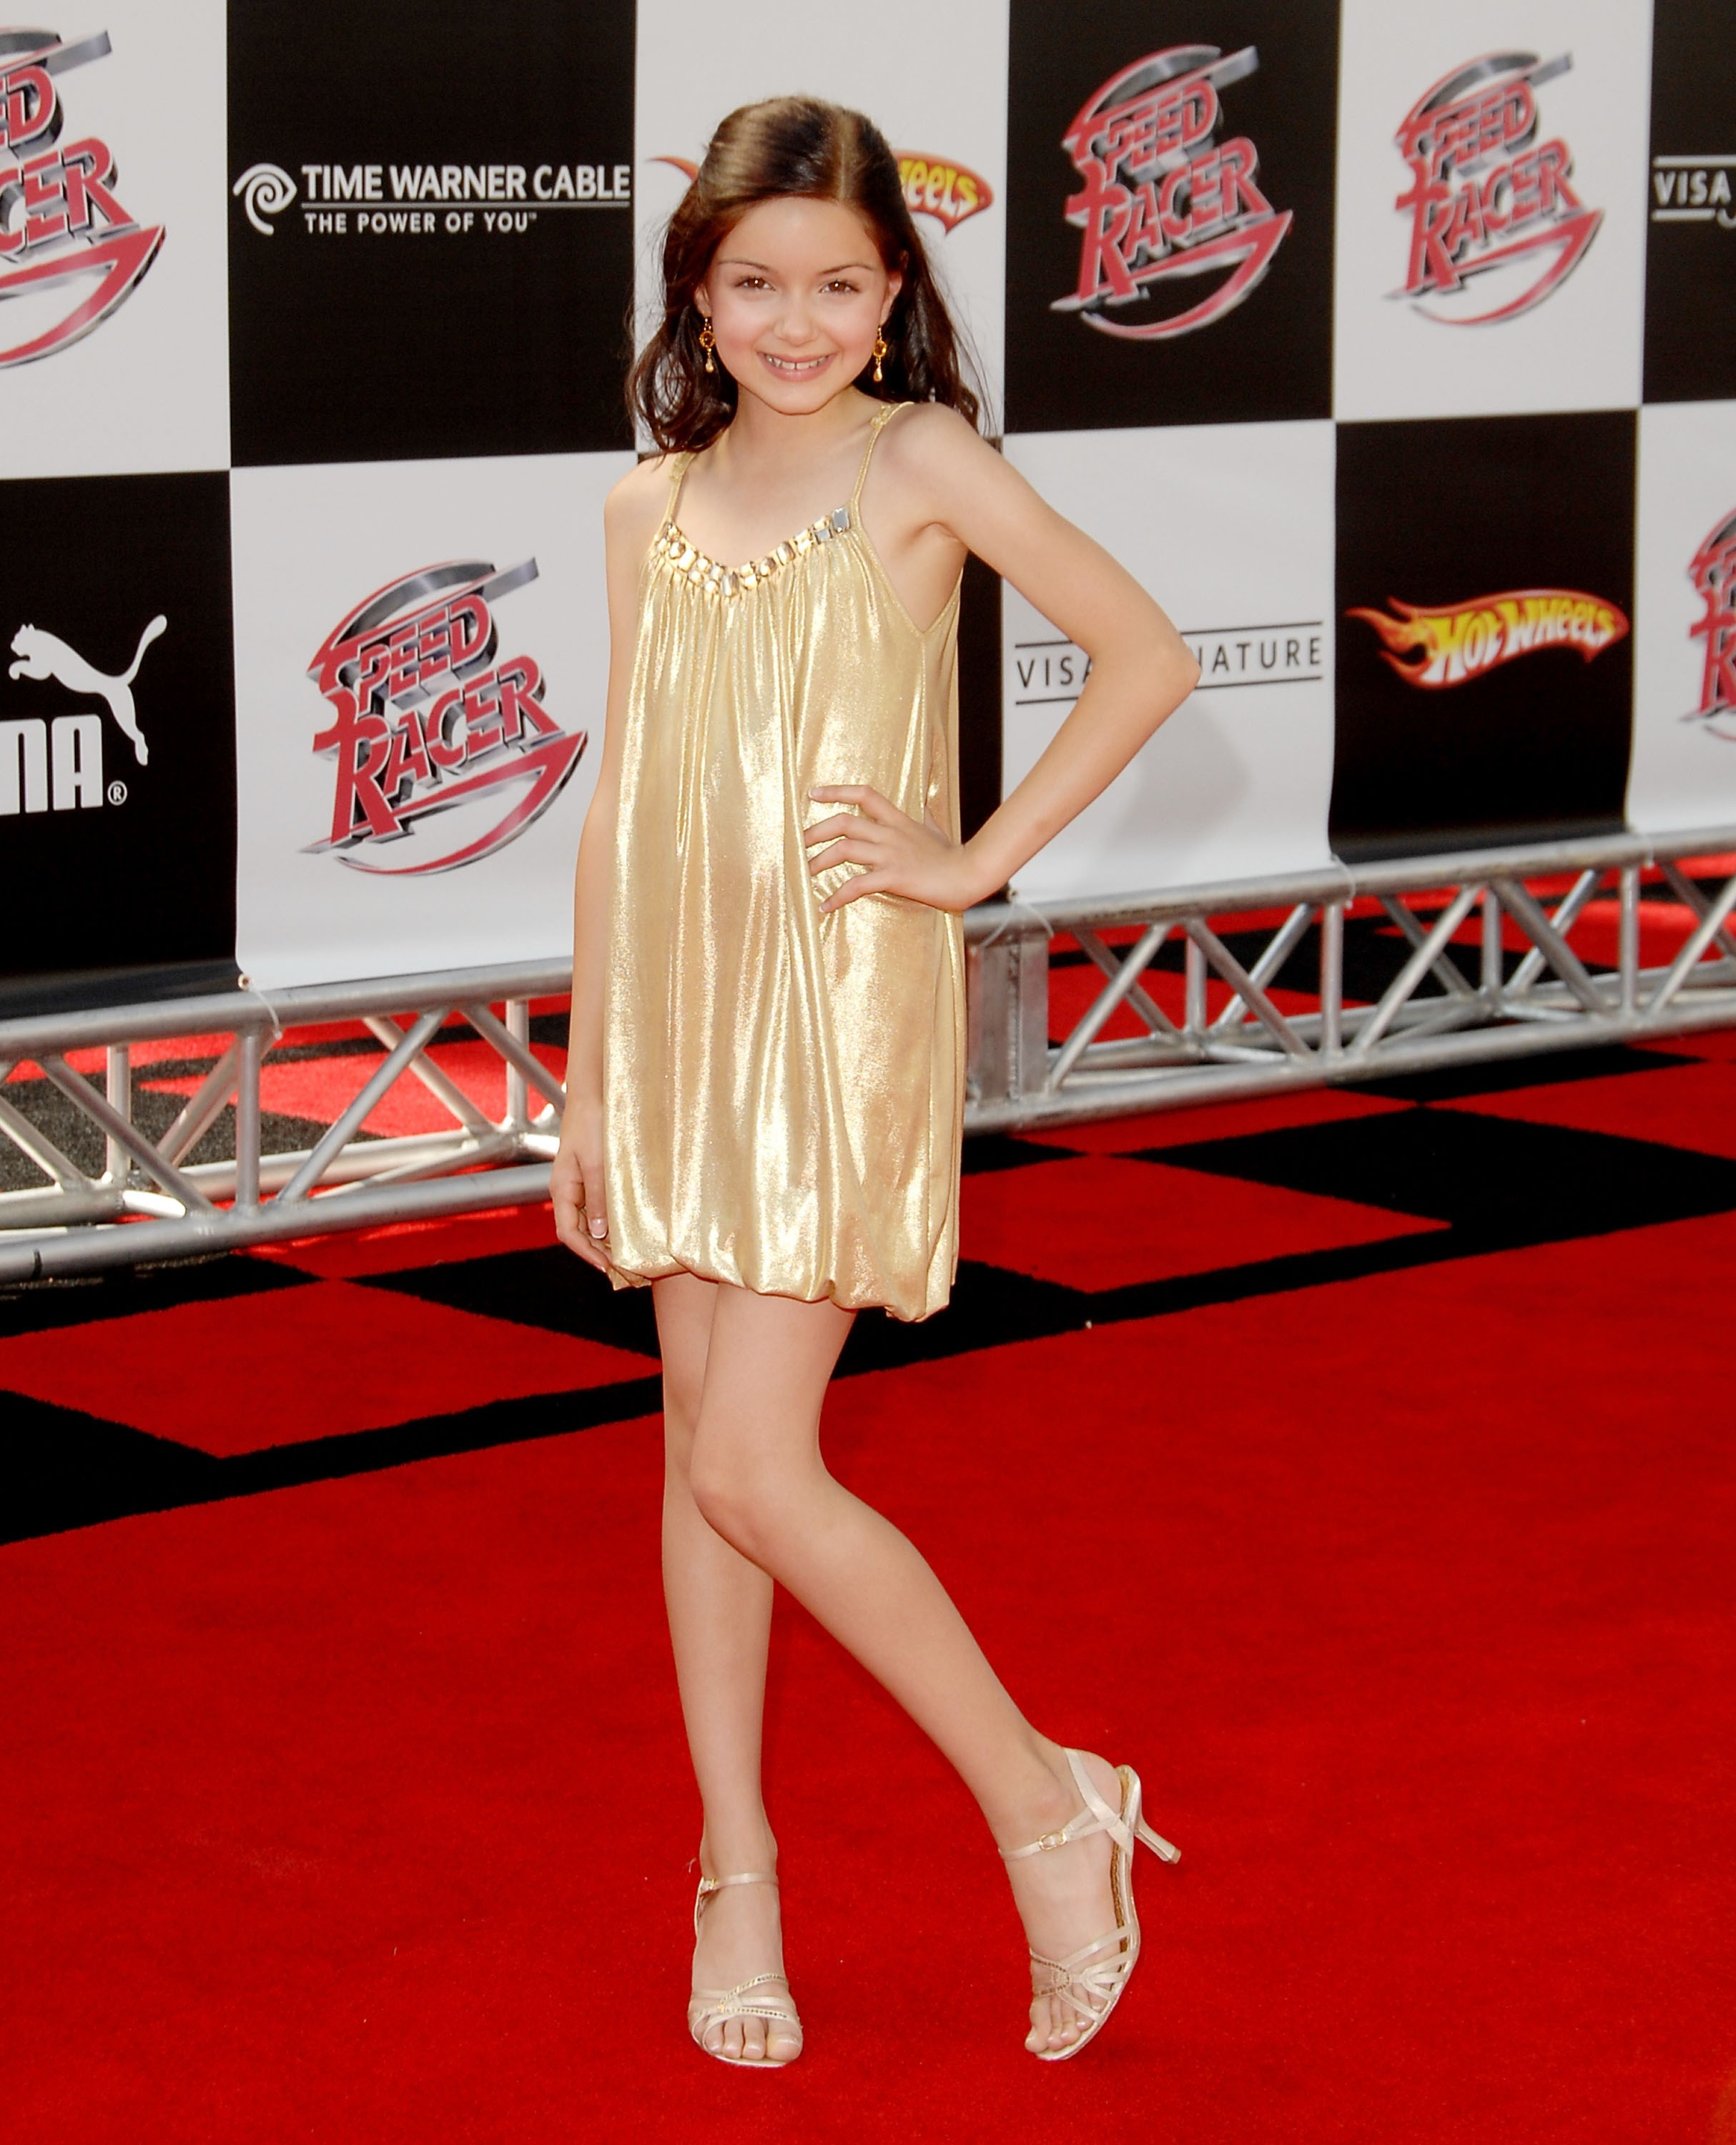 Back in **2008**, when Ariel Winter was just a bubba, she landed a role in the movie *Speed Racer* and rocked the hell out of this gold slip dress and strappy shoes at the premiere. Wish we looked this dayum stylish when we were 10 years old.